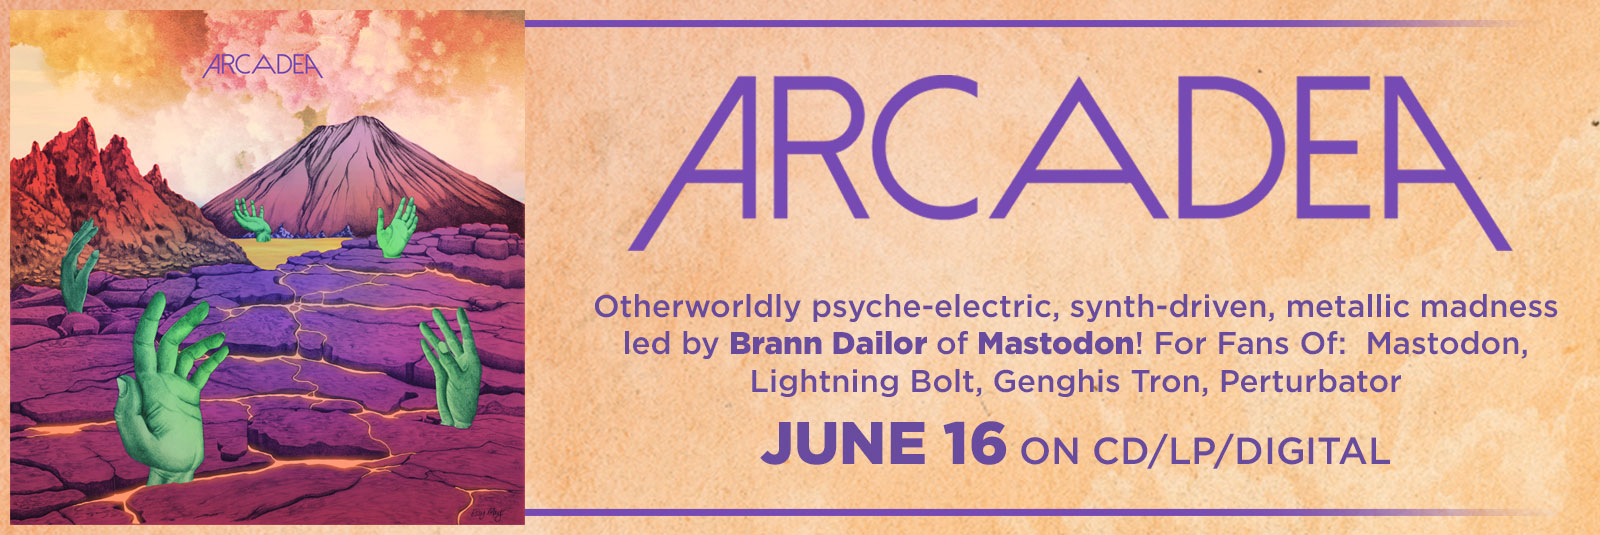 arcadea-lp-brann-dailor